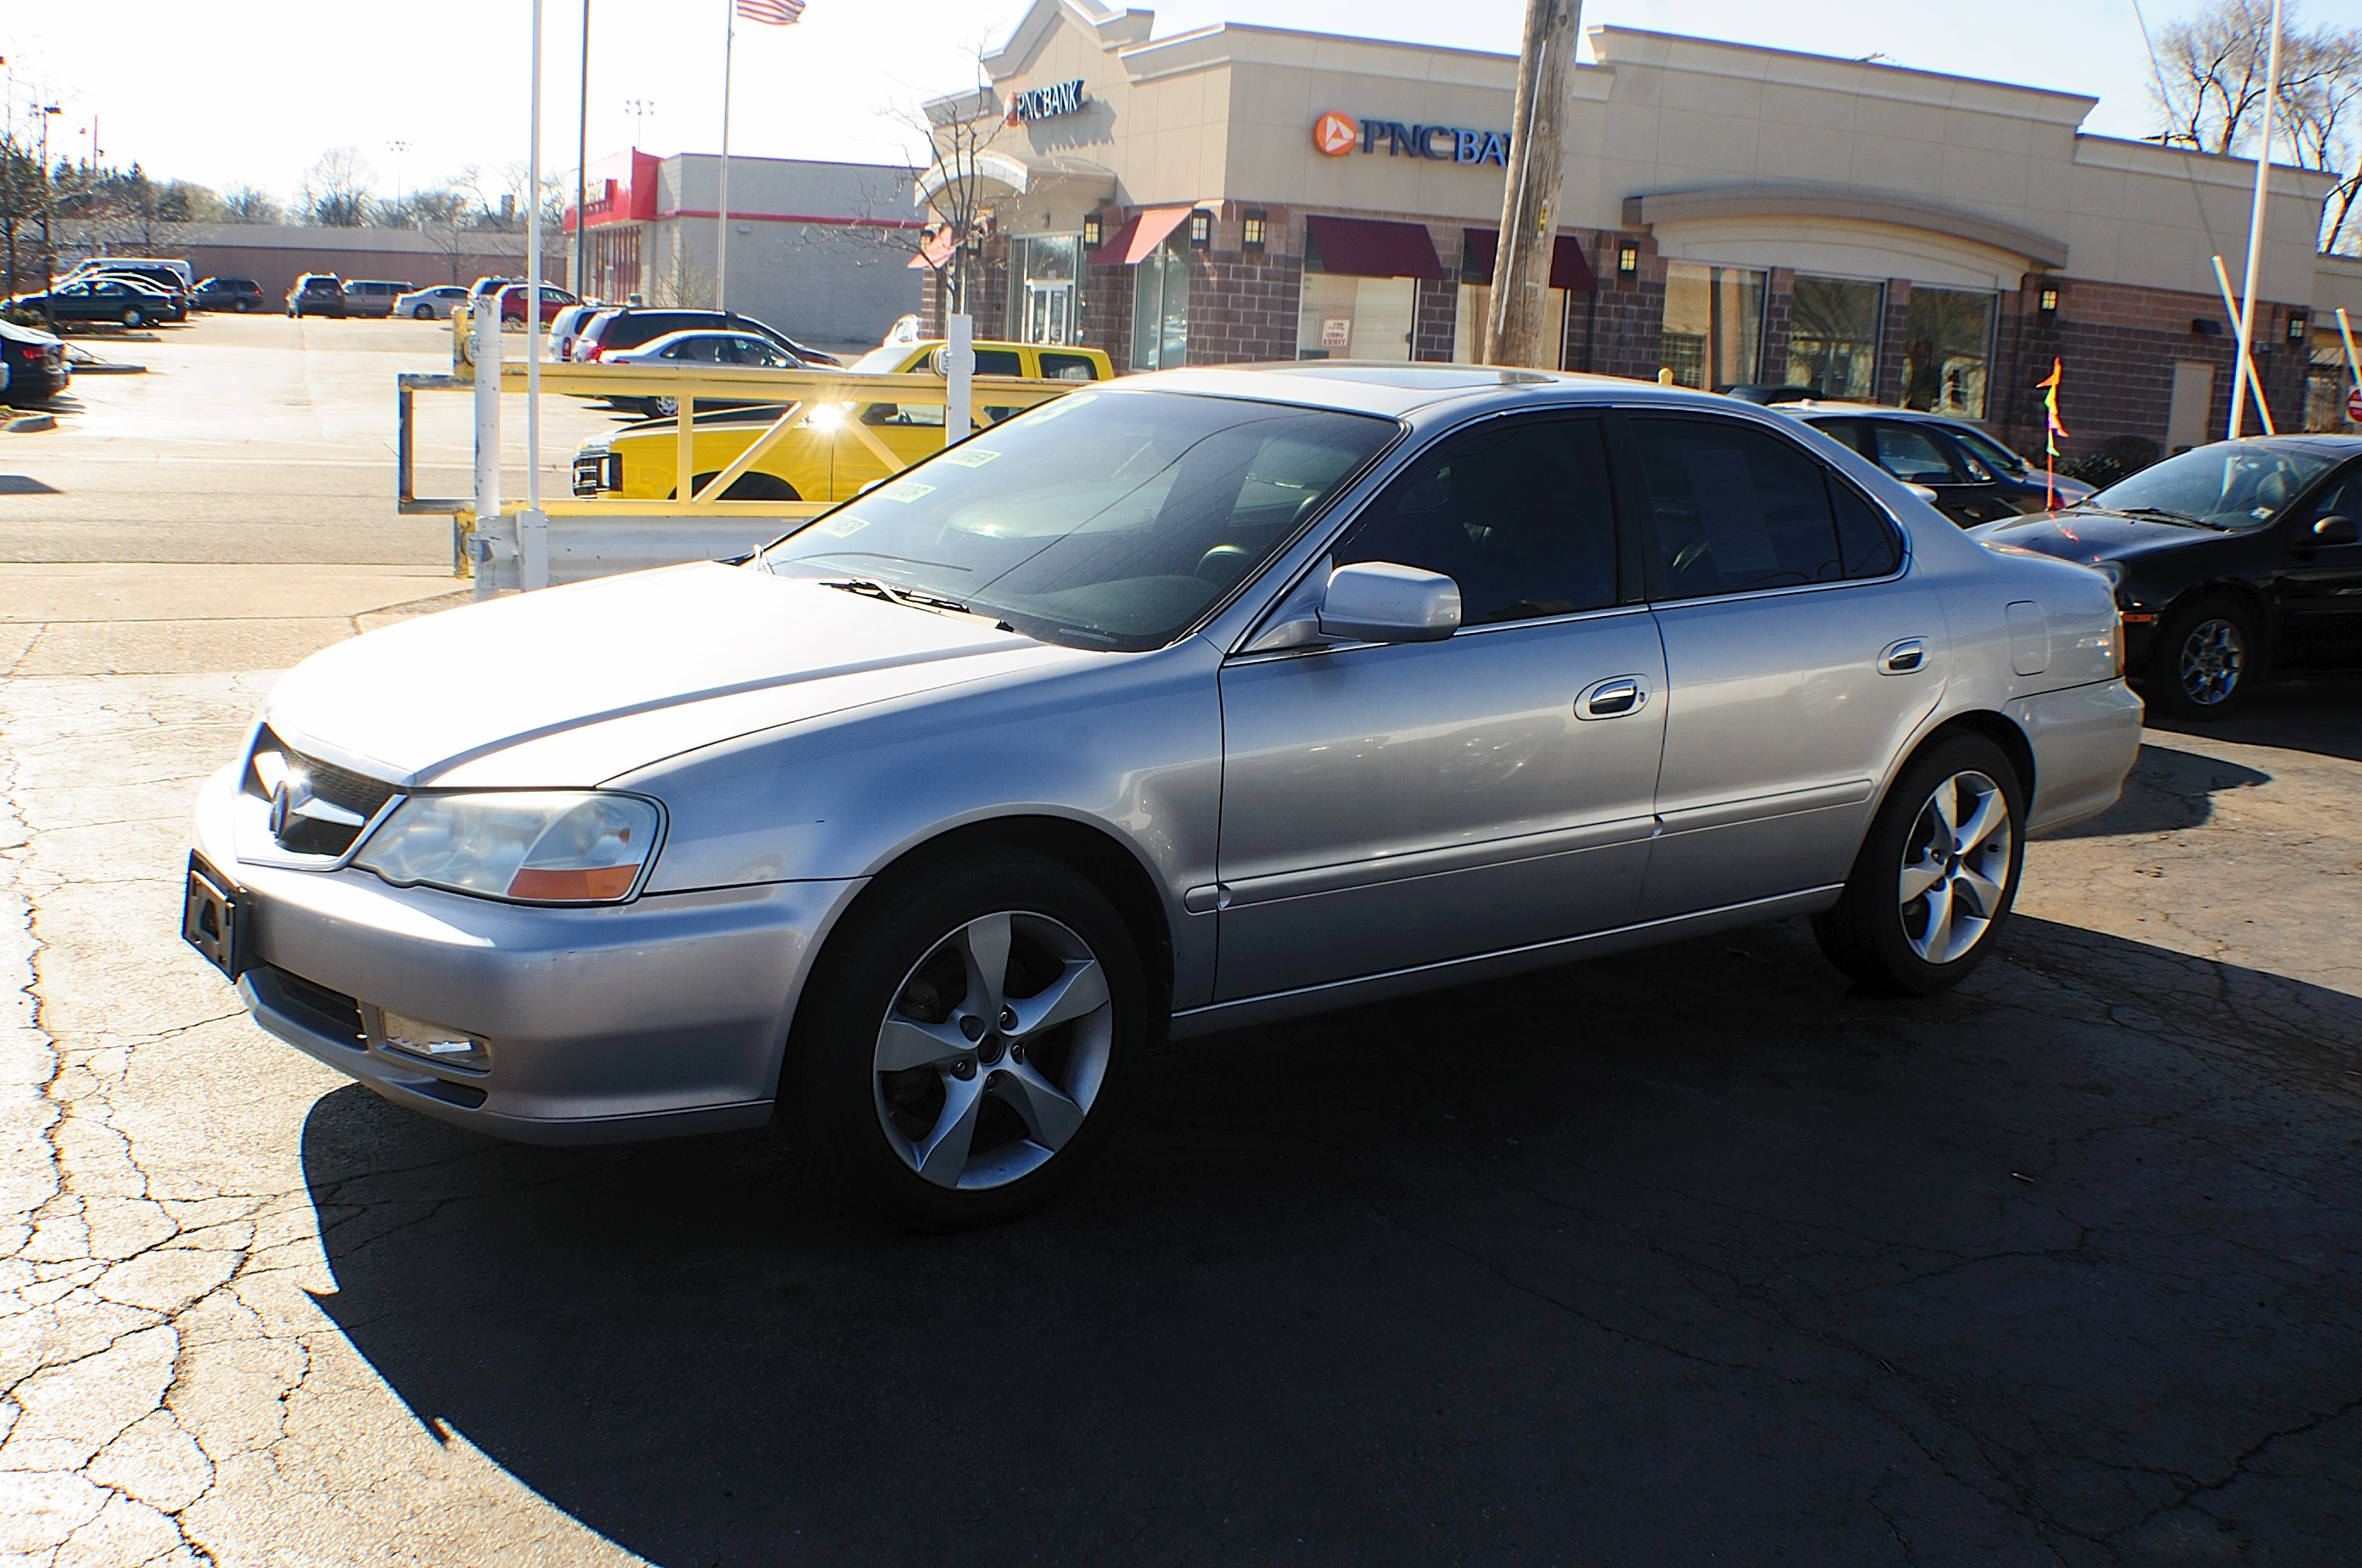 2003 Acura TL 4Dr Silver Sedan Used Car Sale Beach Park Buffalo Grove Deerfield